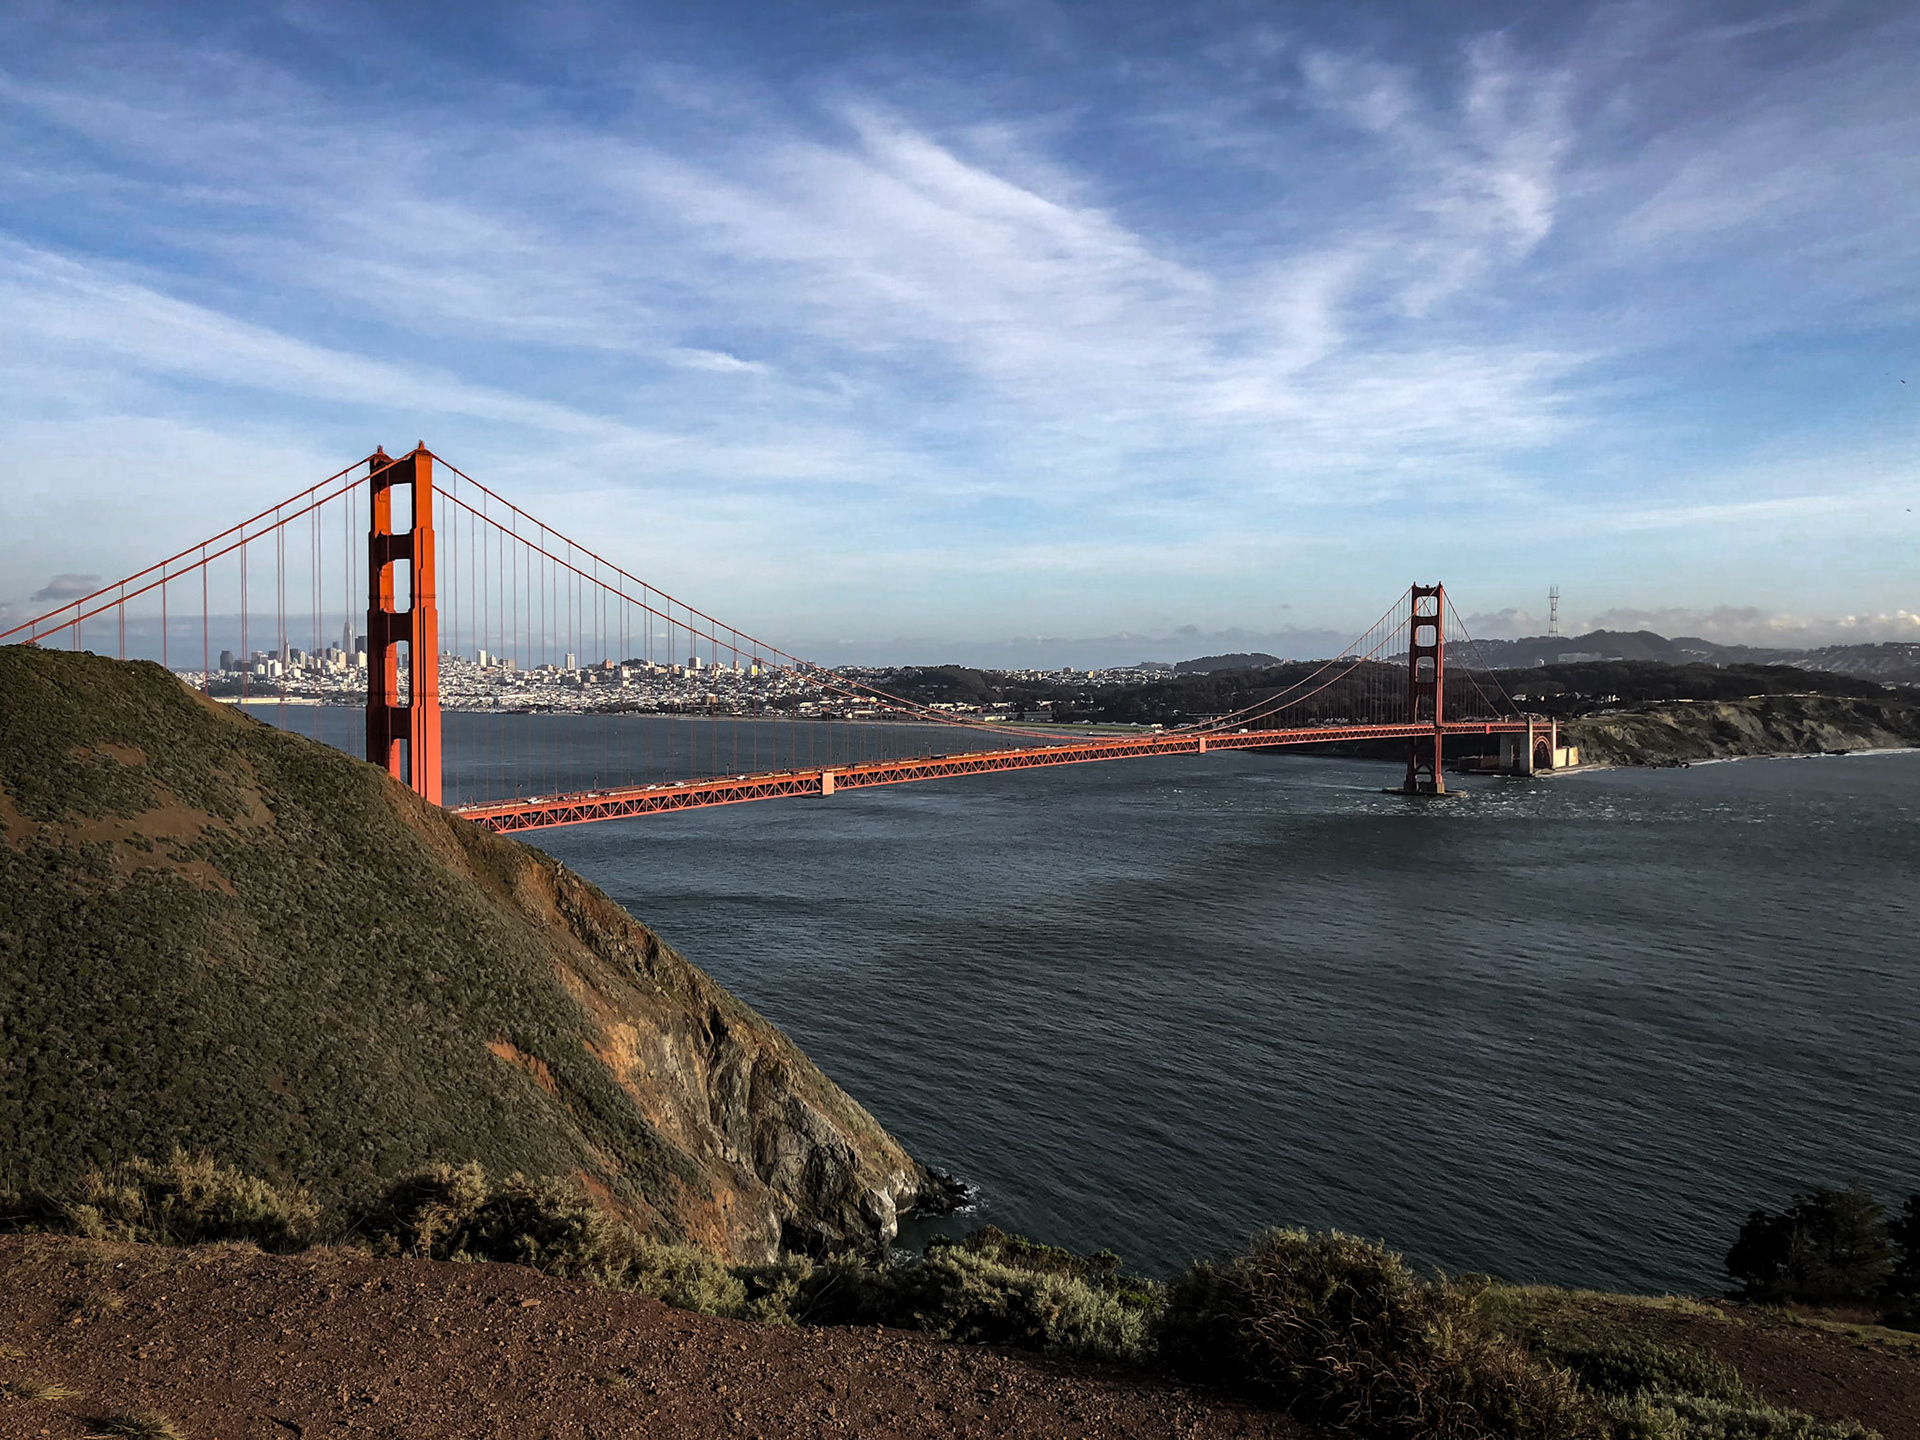 Moby dick by the golden gate bridge photos — photo 1